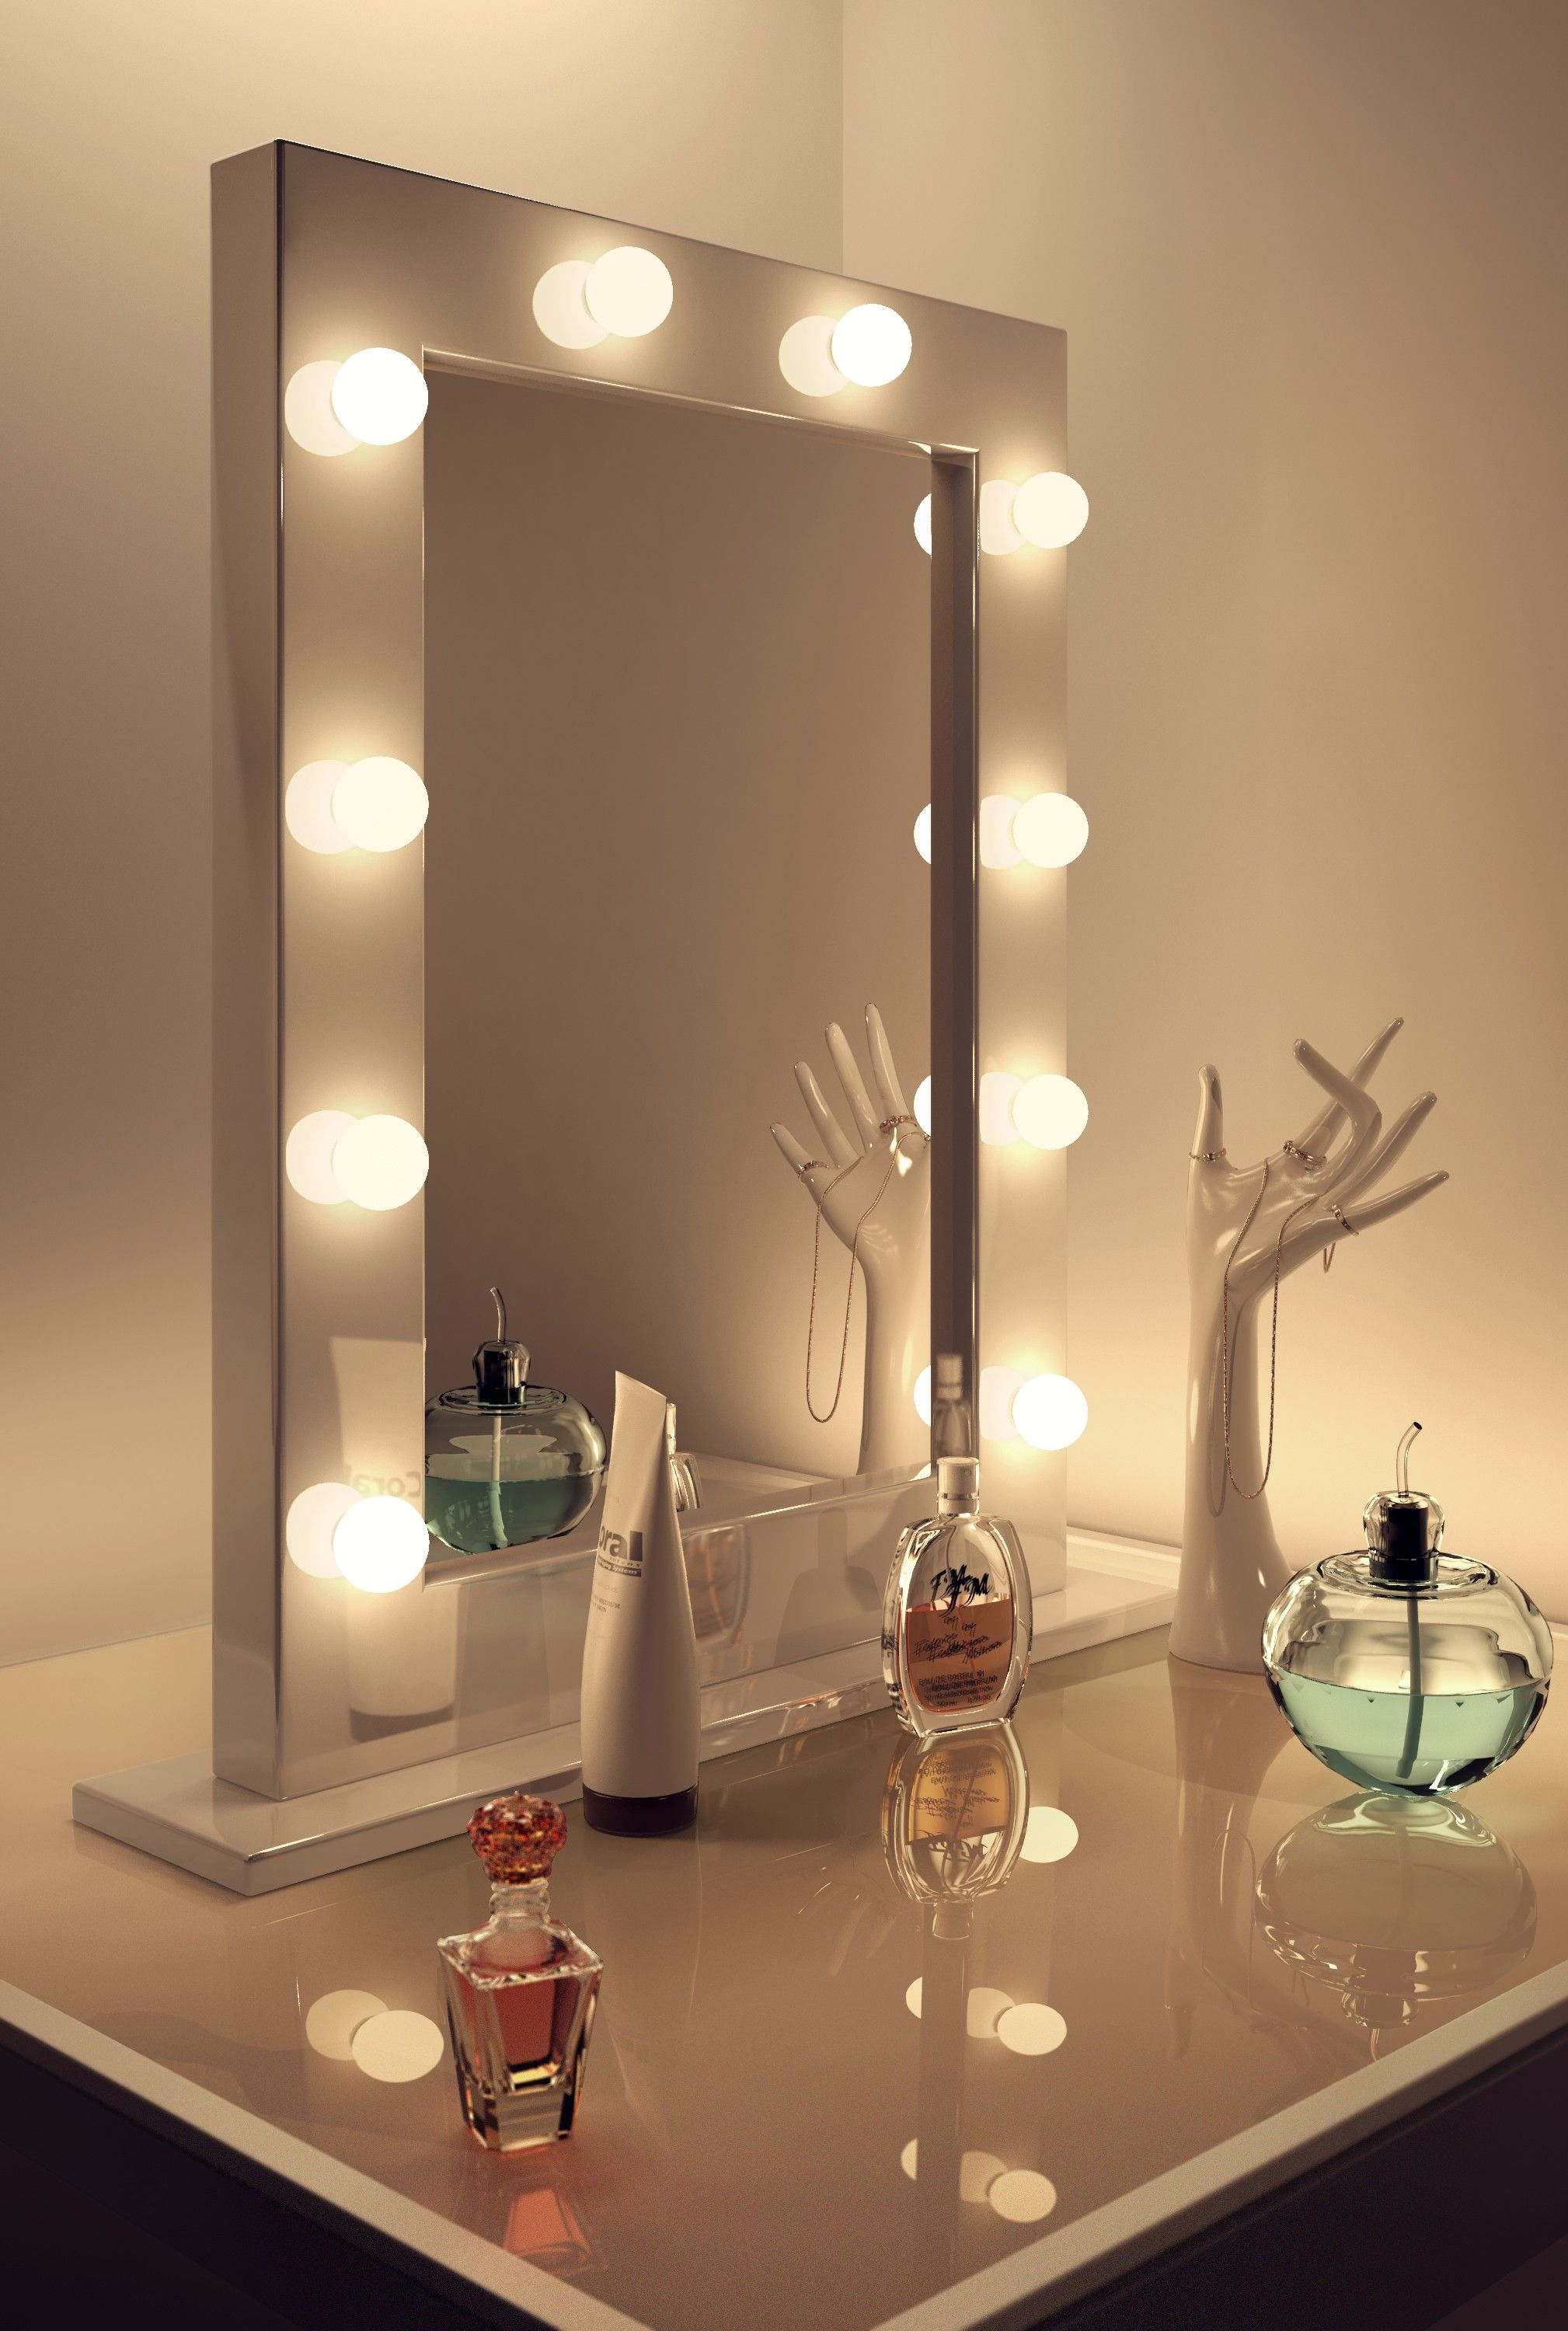 Light Bulbs For Vanity Mirror